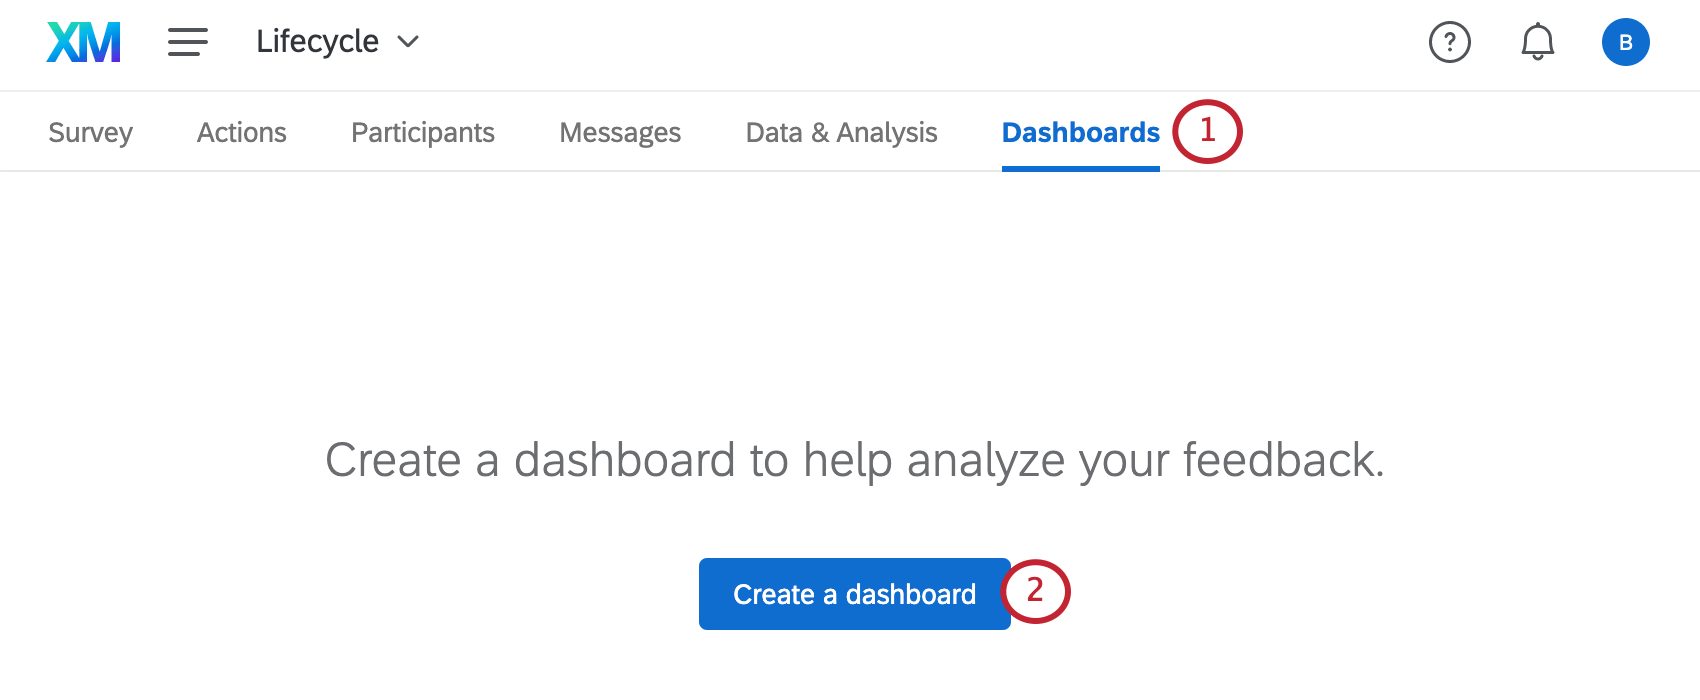 Create Dashboard button in the center of the Dashboards tab (because no dashboards have been created yet)